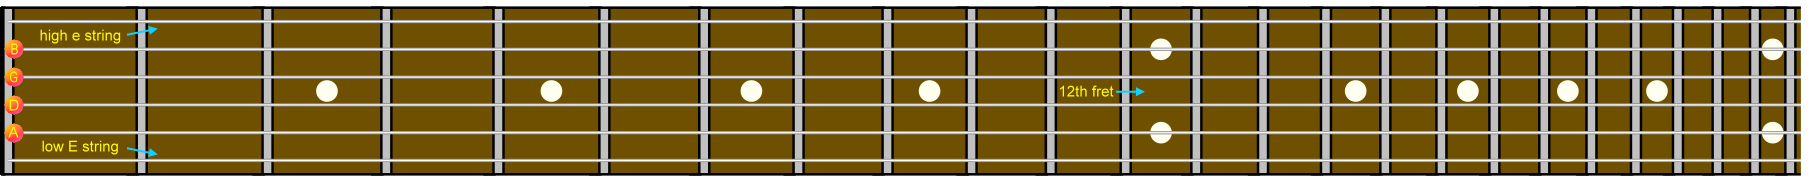 Guitar Notes Fretboard Chart. blank guitar scale chart;